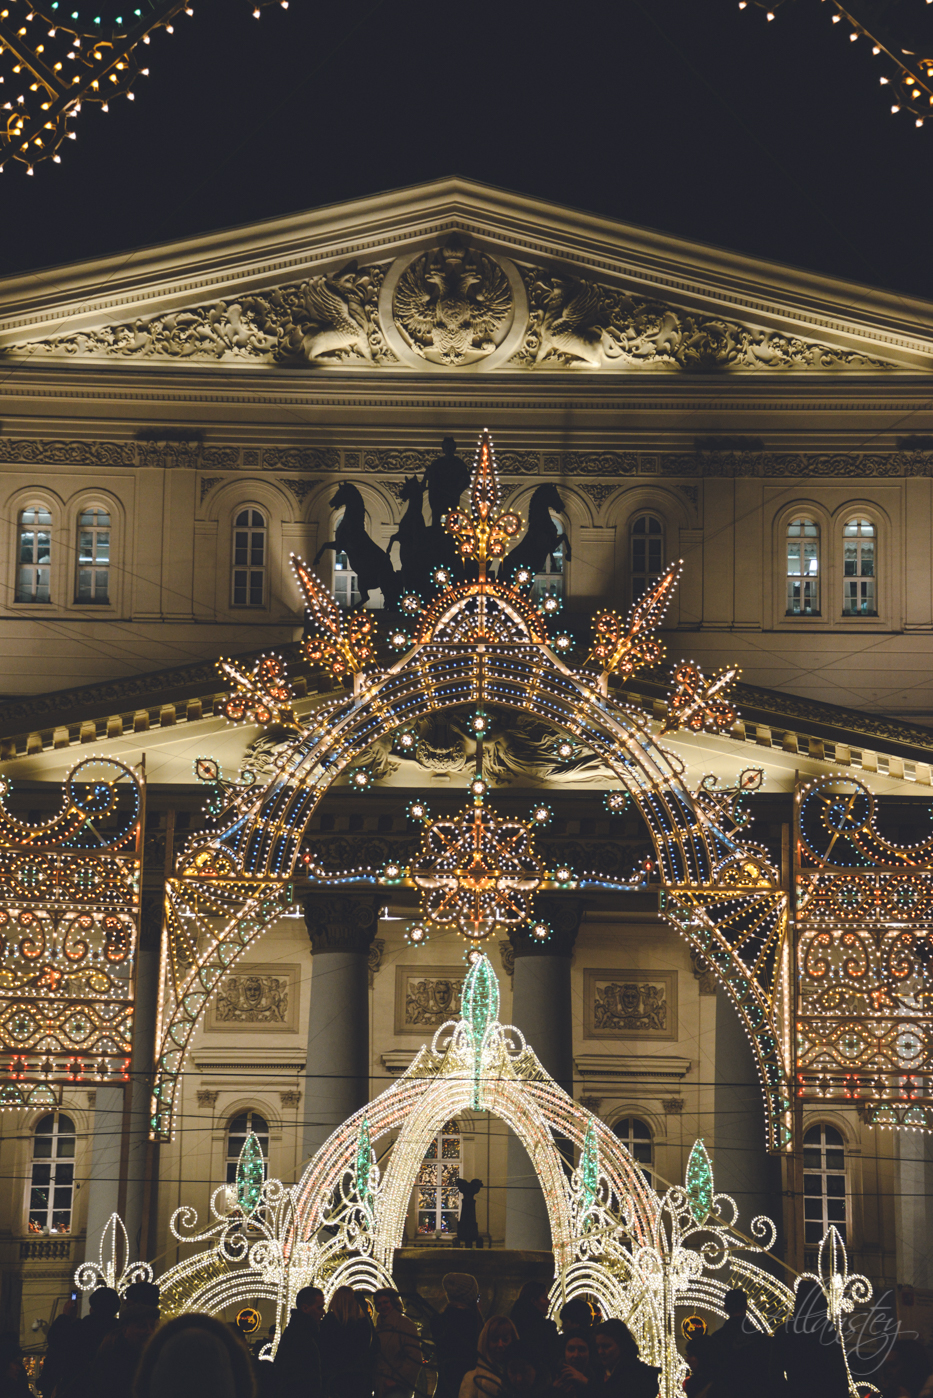 Bolshoi theatre Christmas holiday decoration in Moscow, Russia